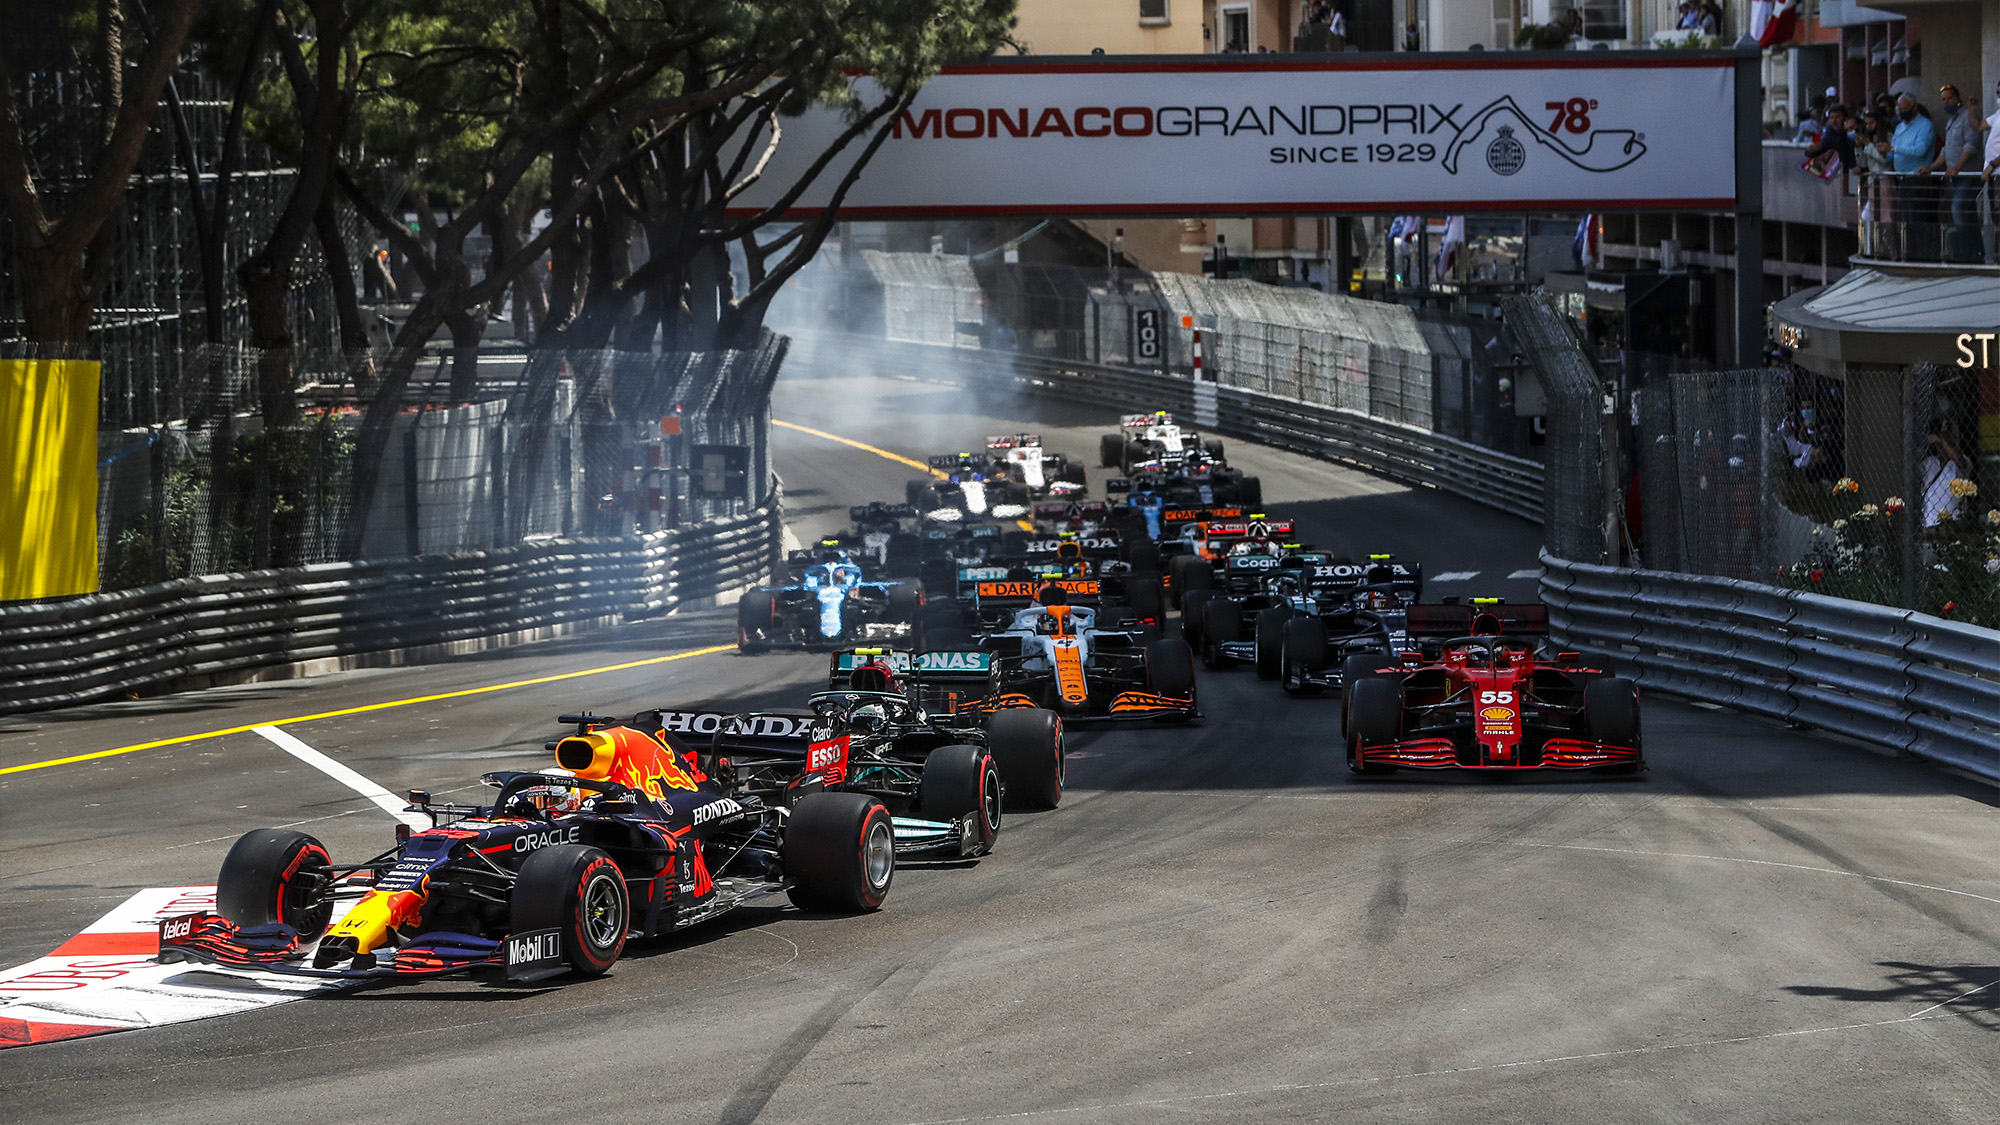 Max Verstappen leads at the start of the 2021 monaco Grand Prix